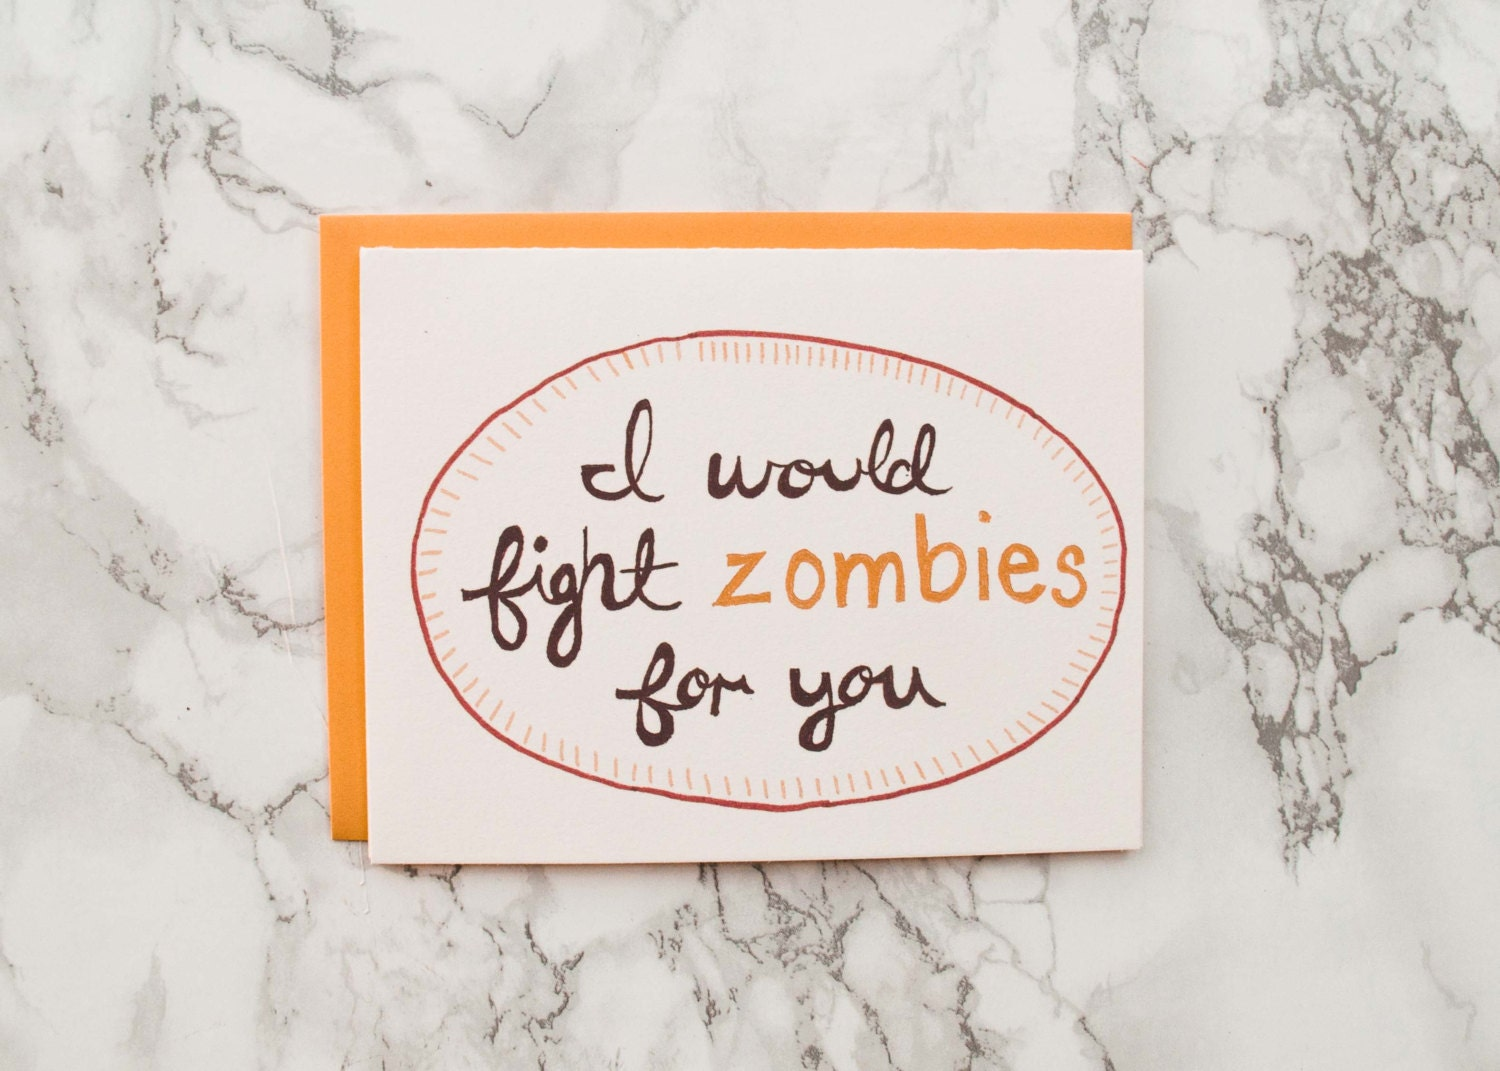 Zombie anniversary card funny valentines day eco